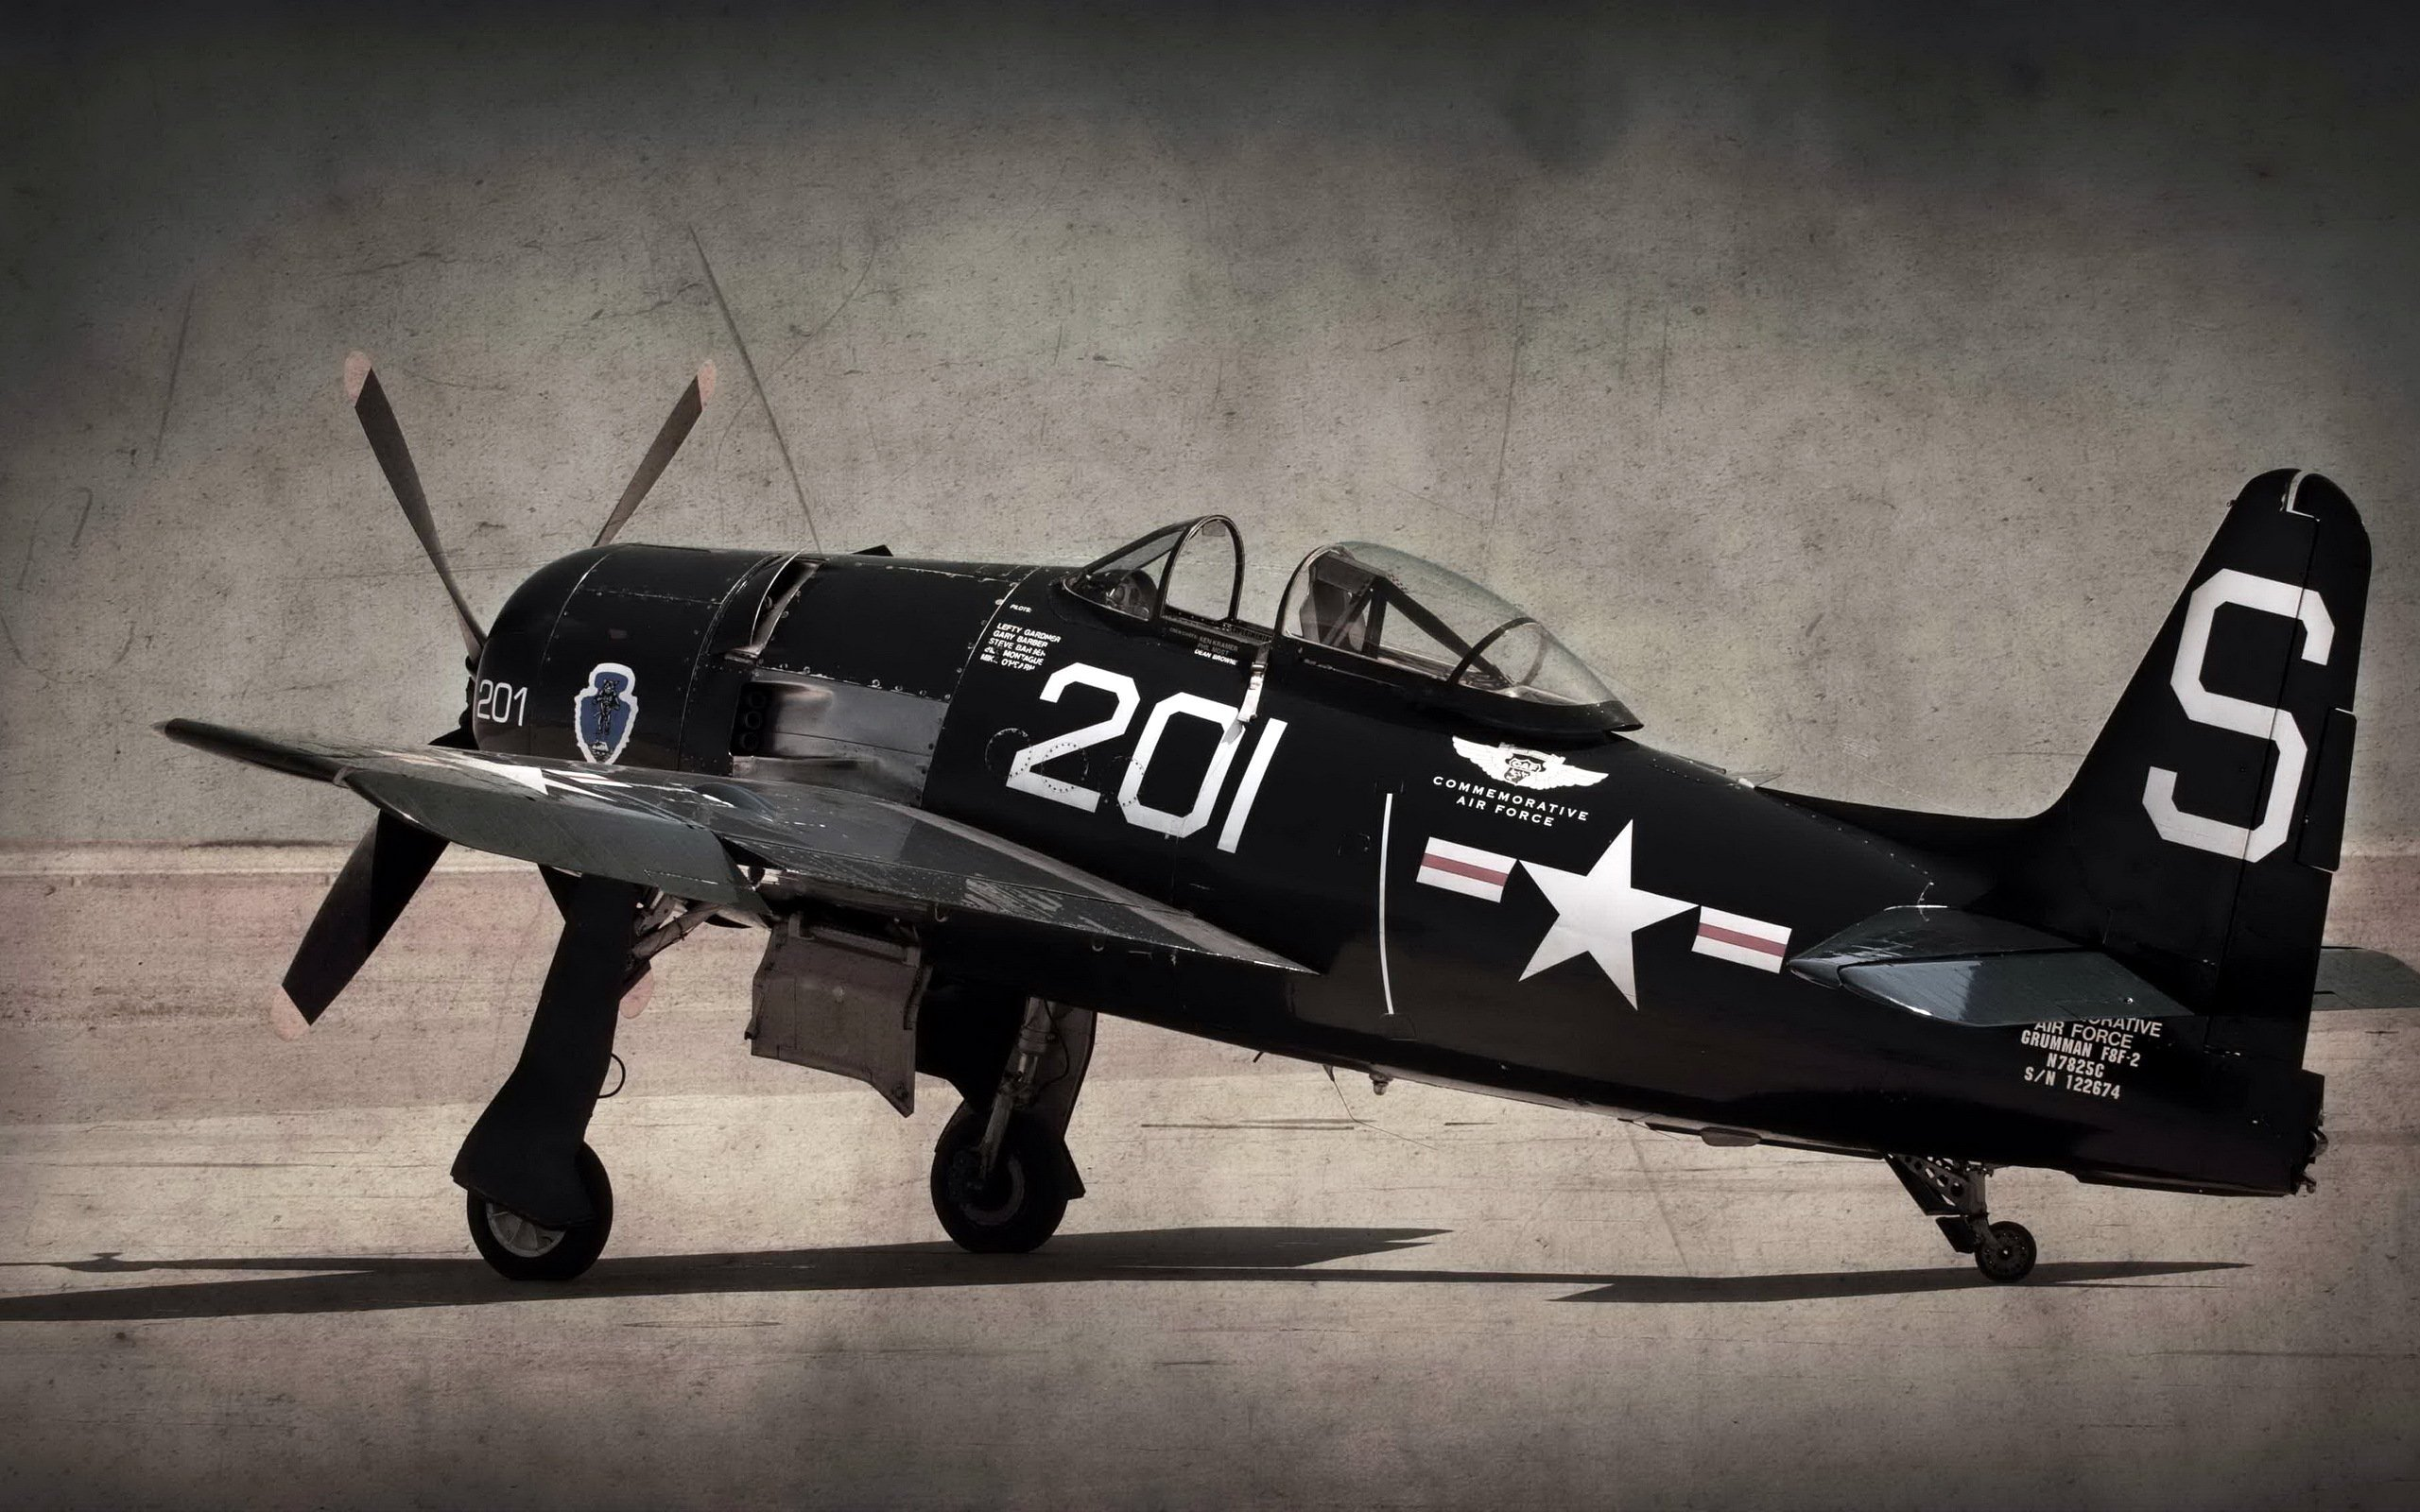 Vintage Airplane HD Background Wallpapers 5886   Amazing 2560x1600